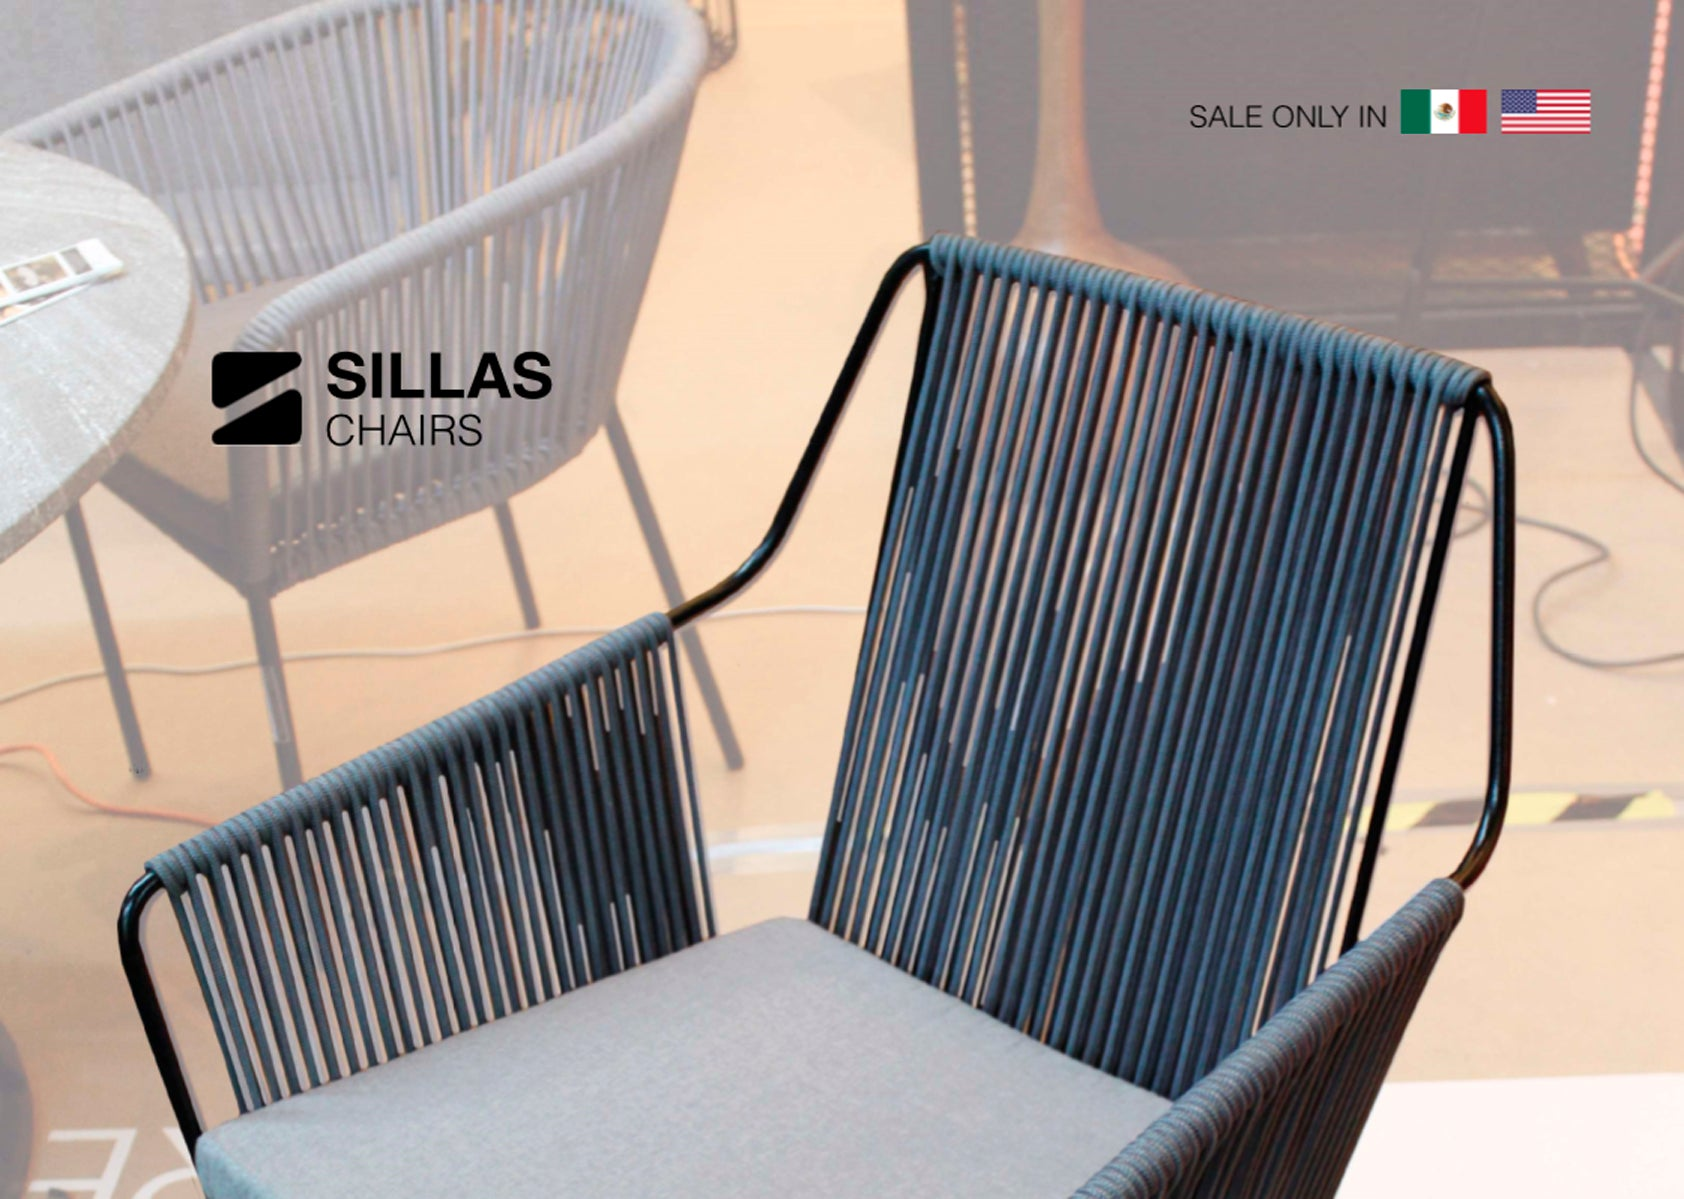 SILLAS // CHAIRS